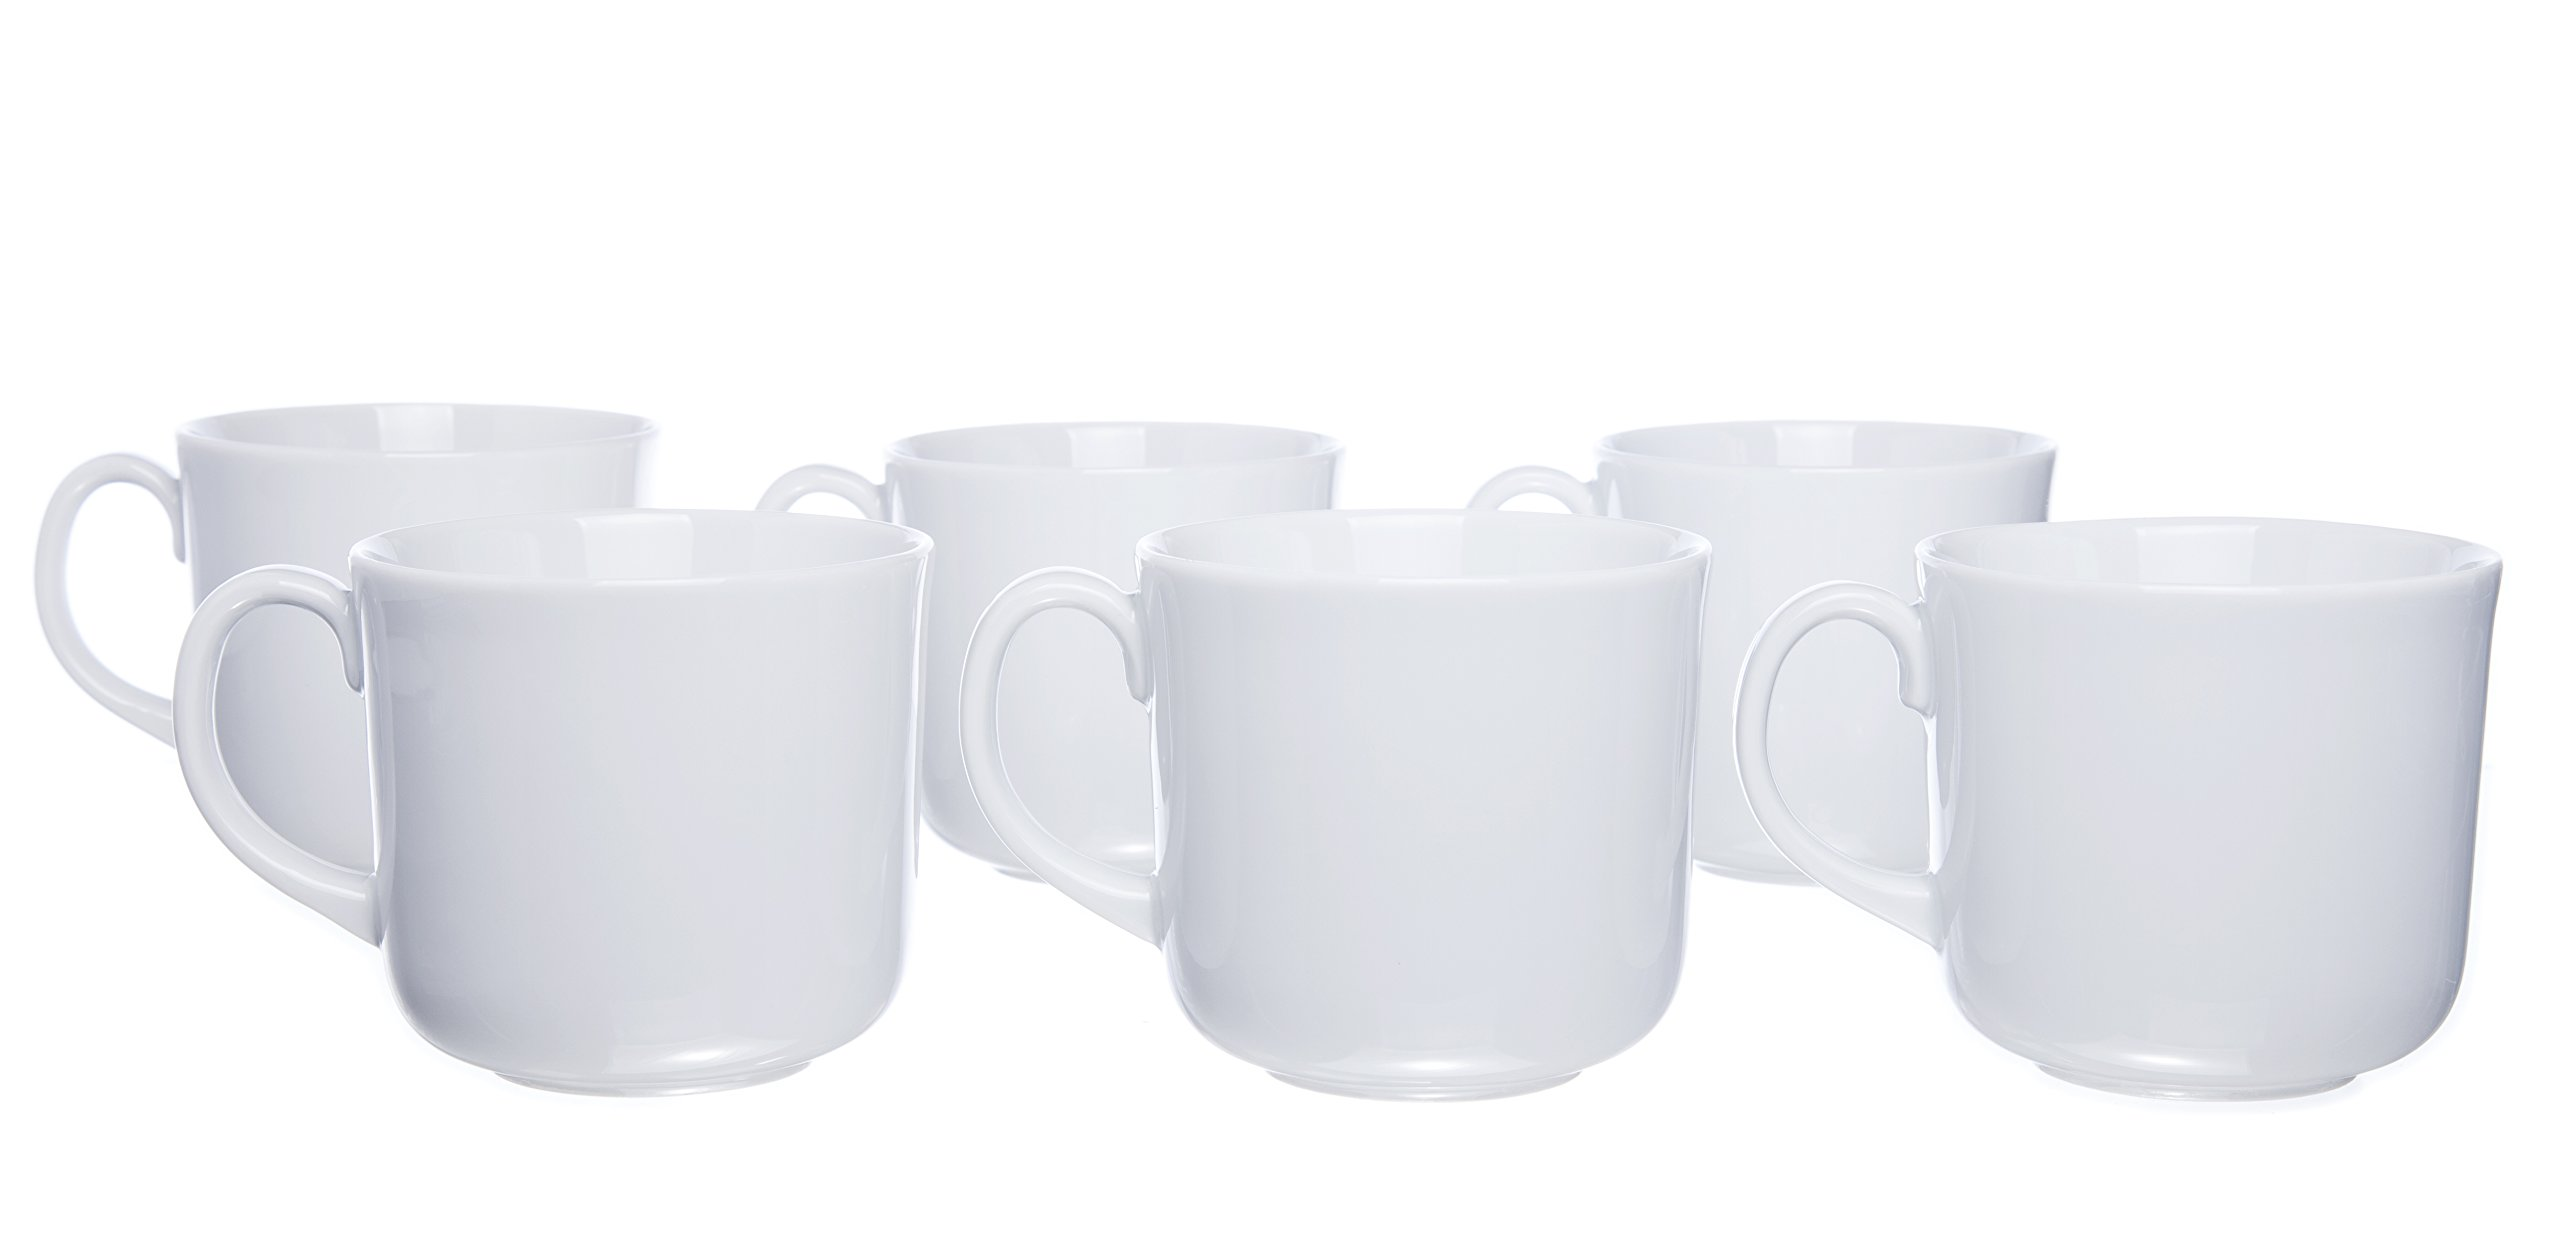 6-Piece Tea/Coffee MUGS with Handle, White Porcelain, Restaurant&Hotel Quality, 11.7 Oz